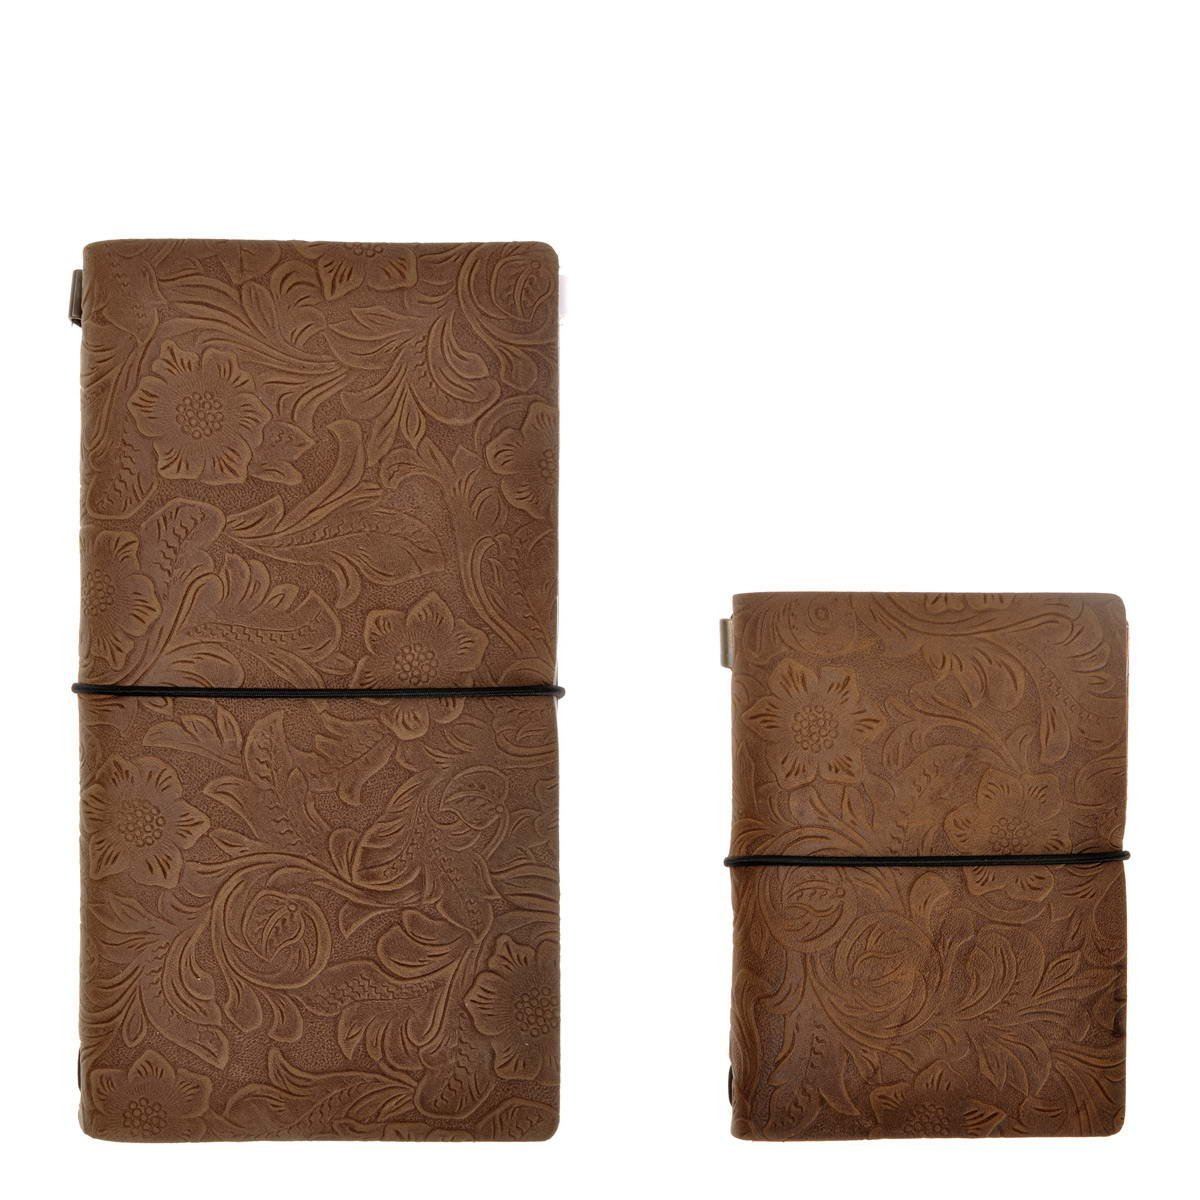 """Refillable Leather Journal Vintage Flower Embossed Travelers Notebook Set, 4.7"""" x 8.6"""" &3.9"""" x 5.2"""", for Men Women Writing Gift, by ZLYC, Coffee"""